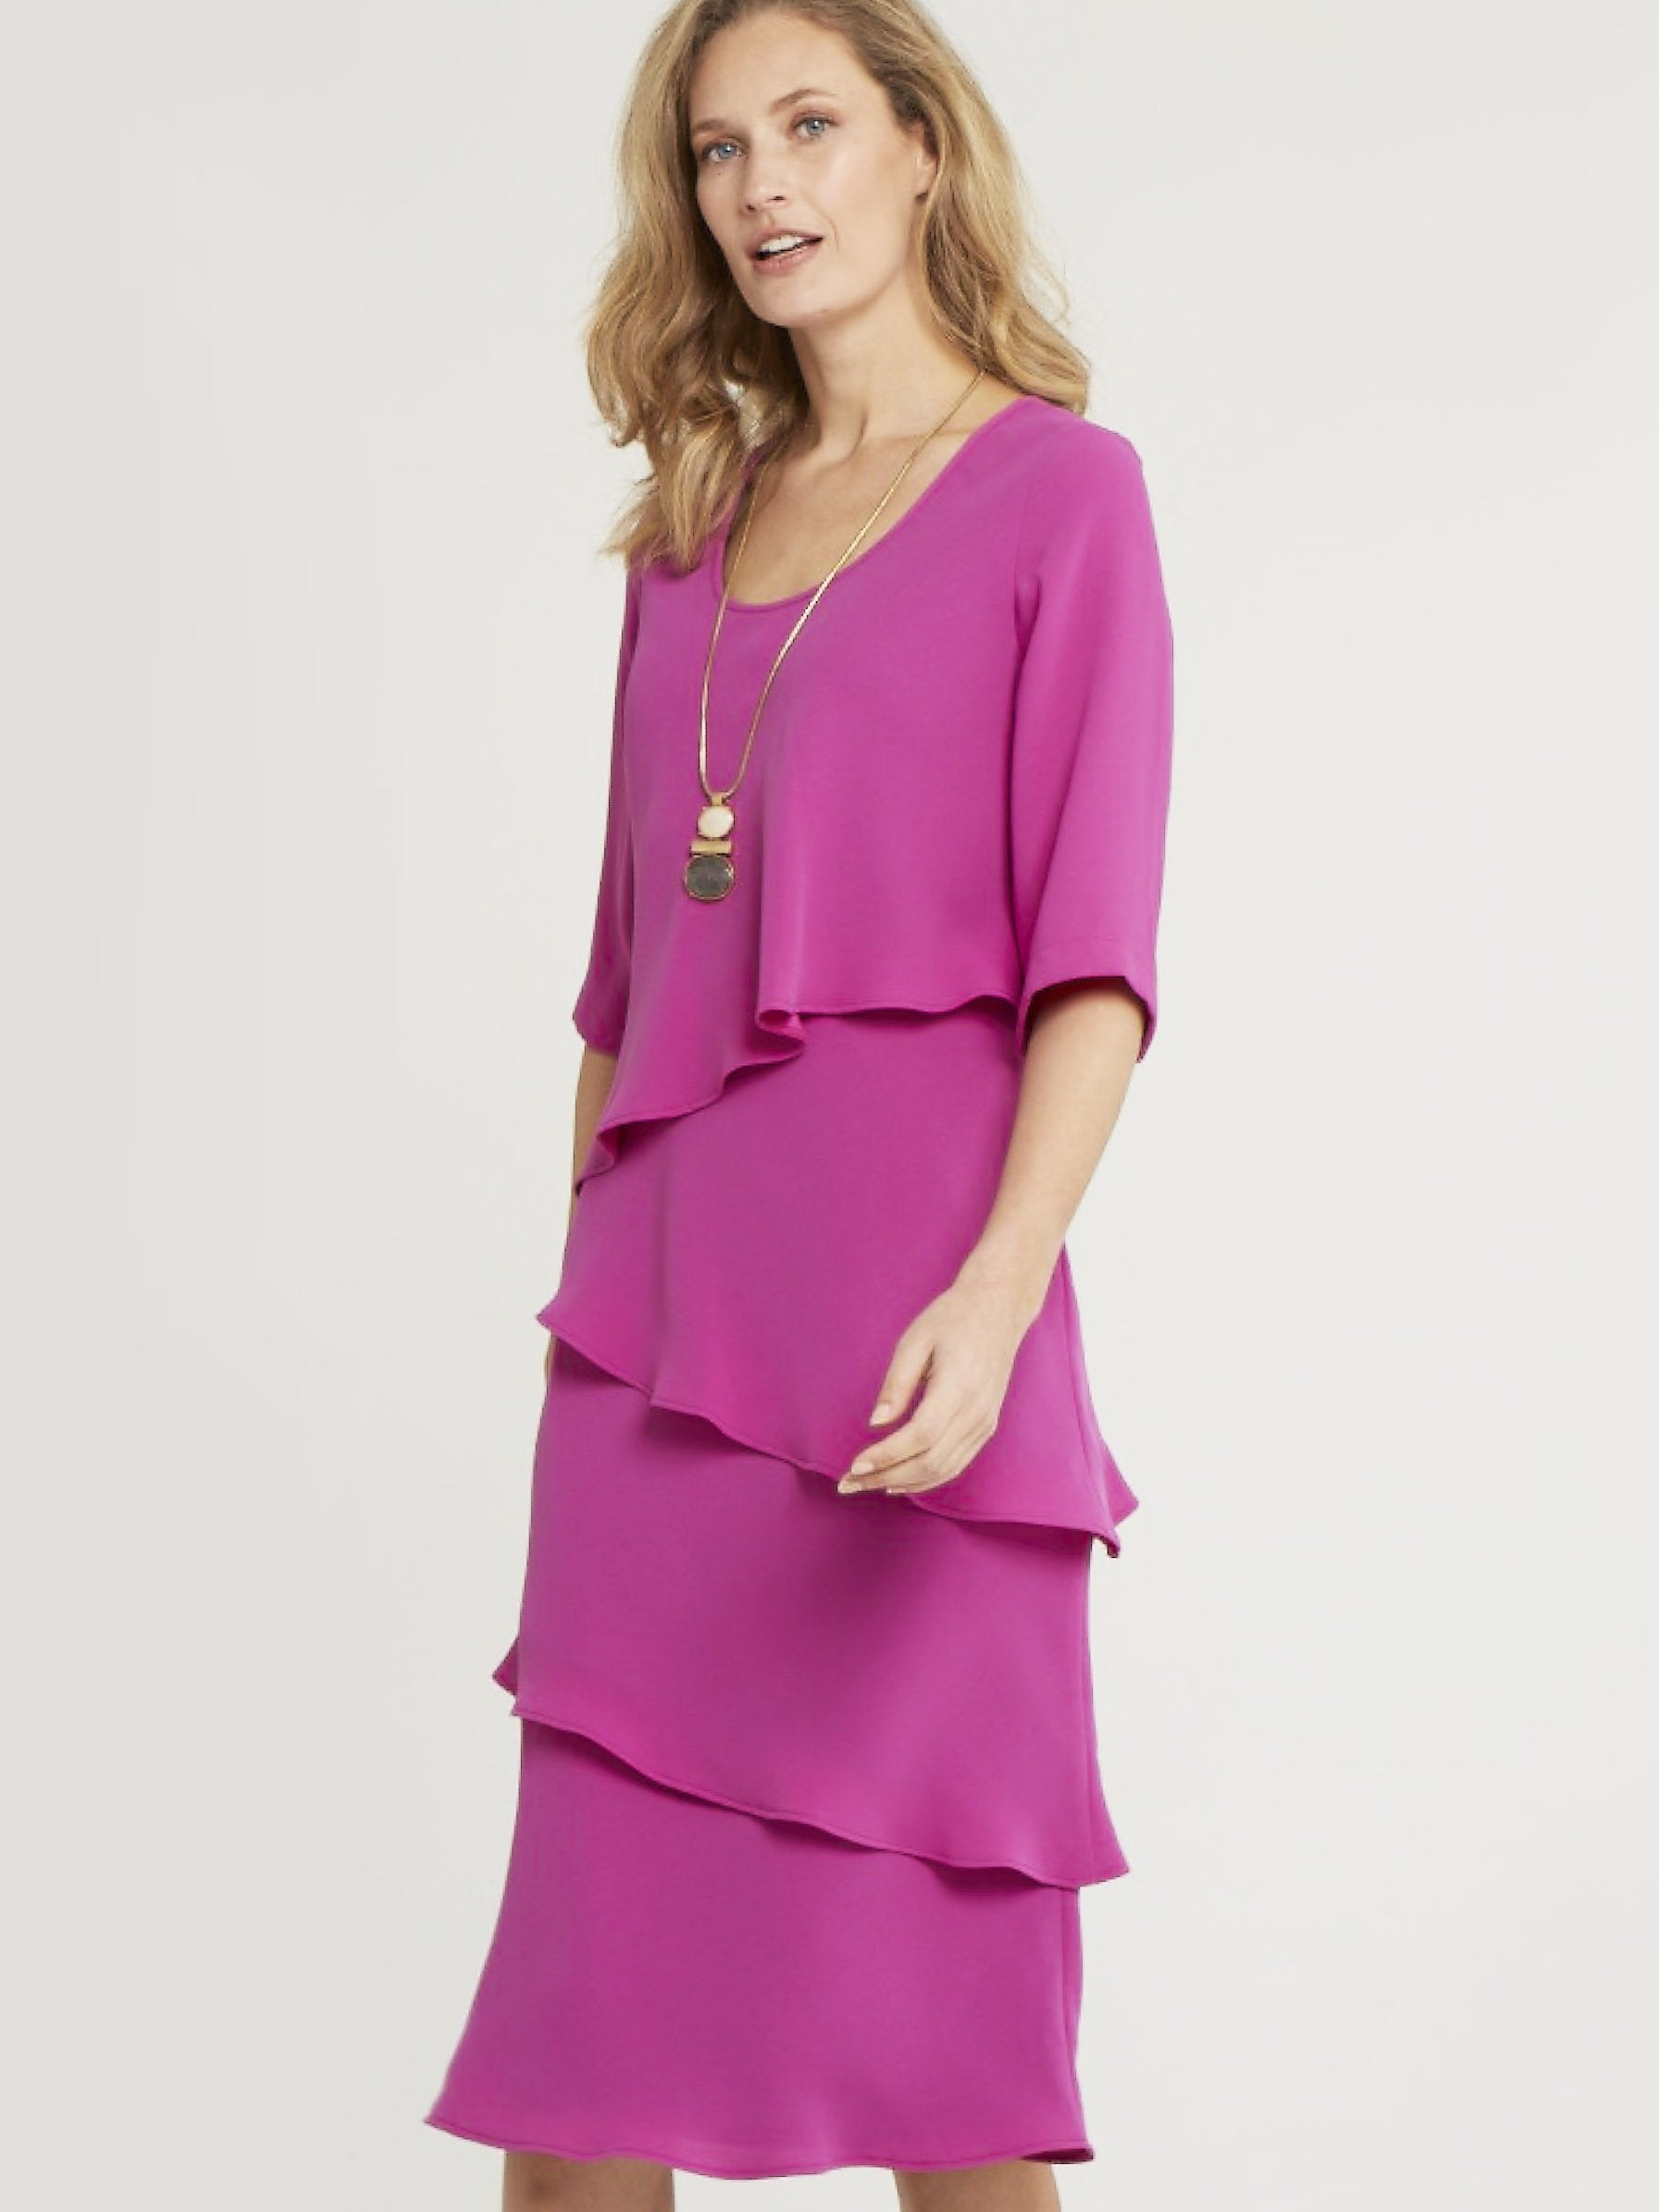 Magenta Multi Layered Crepe Dress  - Pre Order 19th July